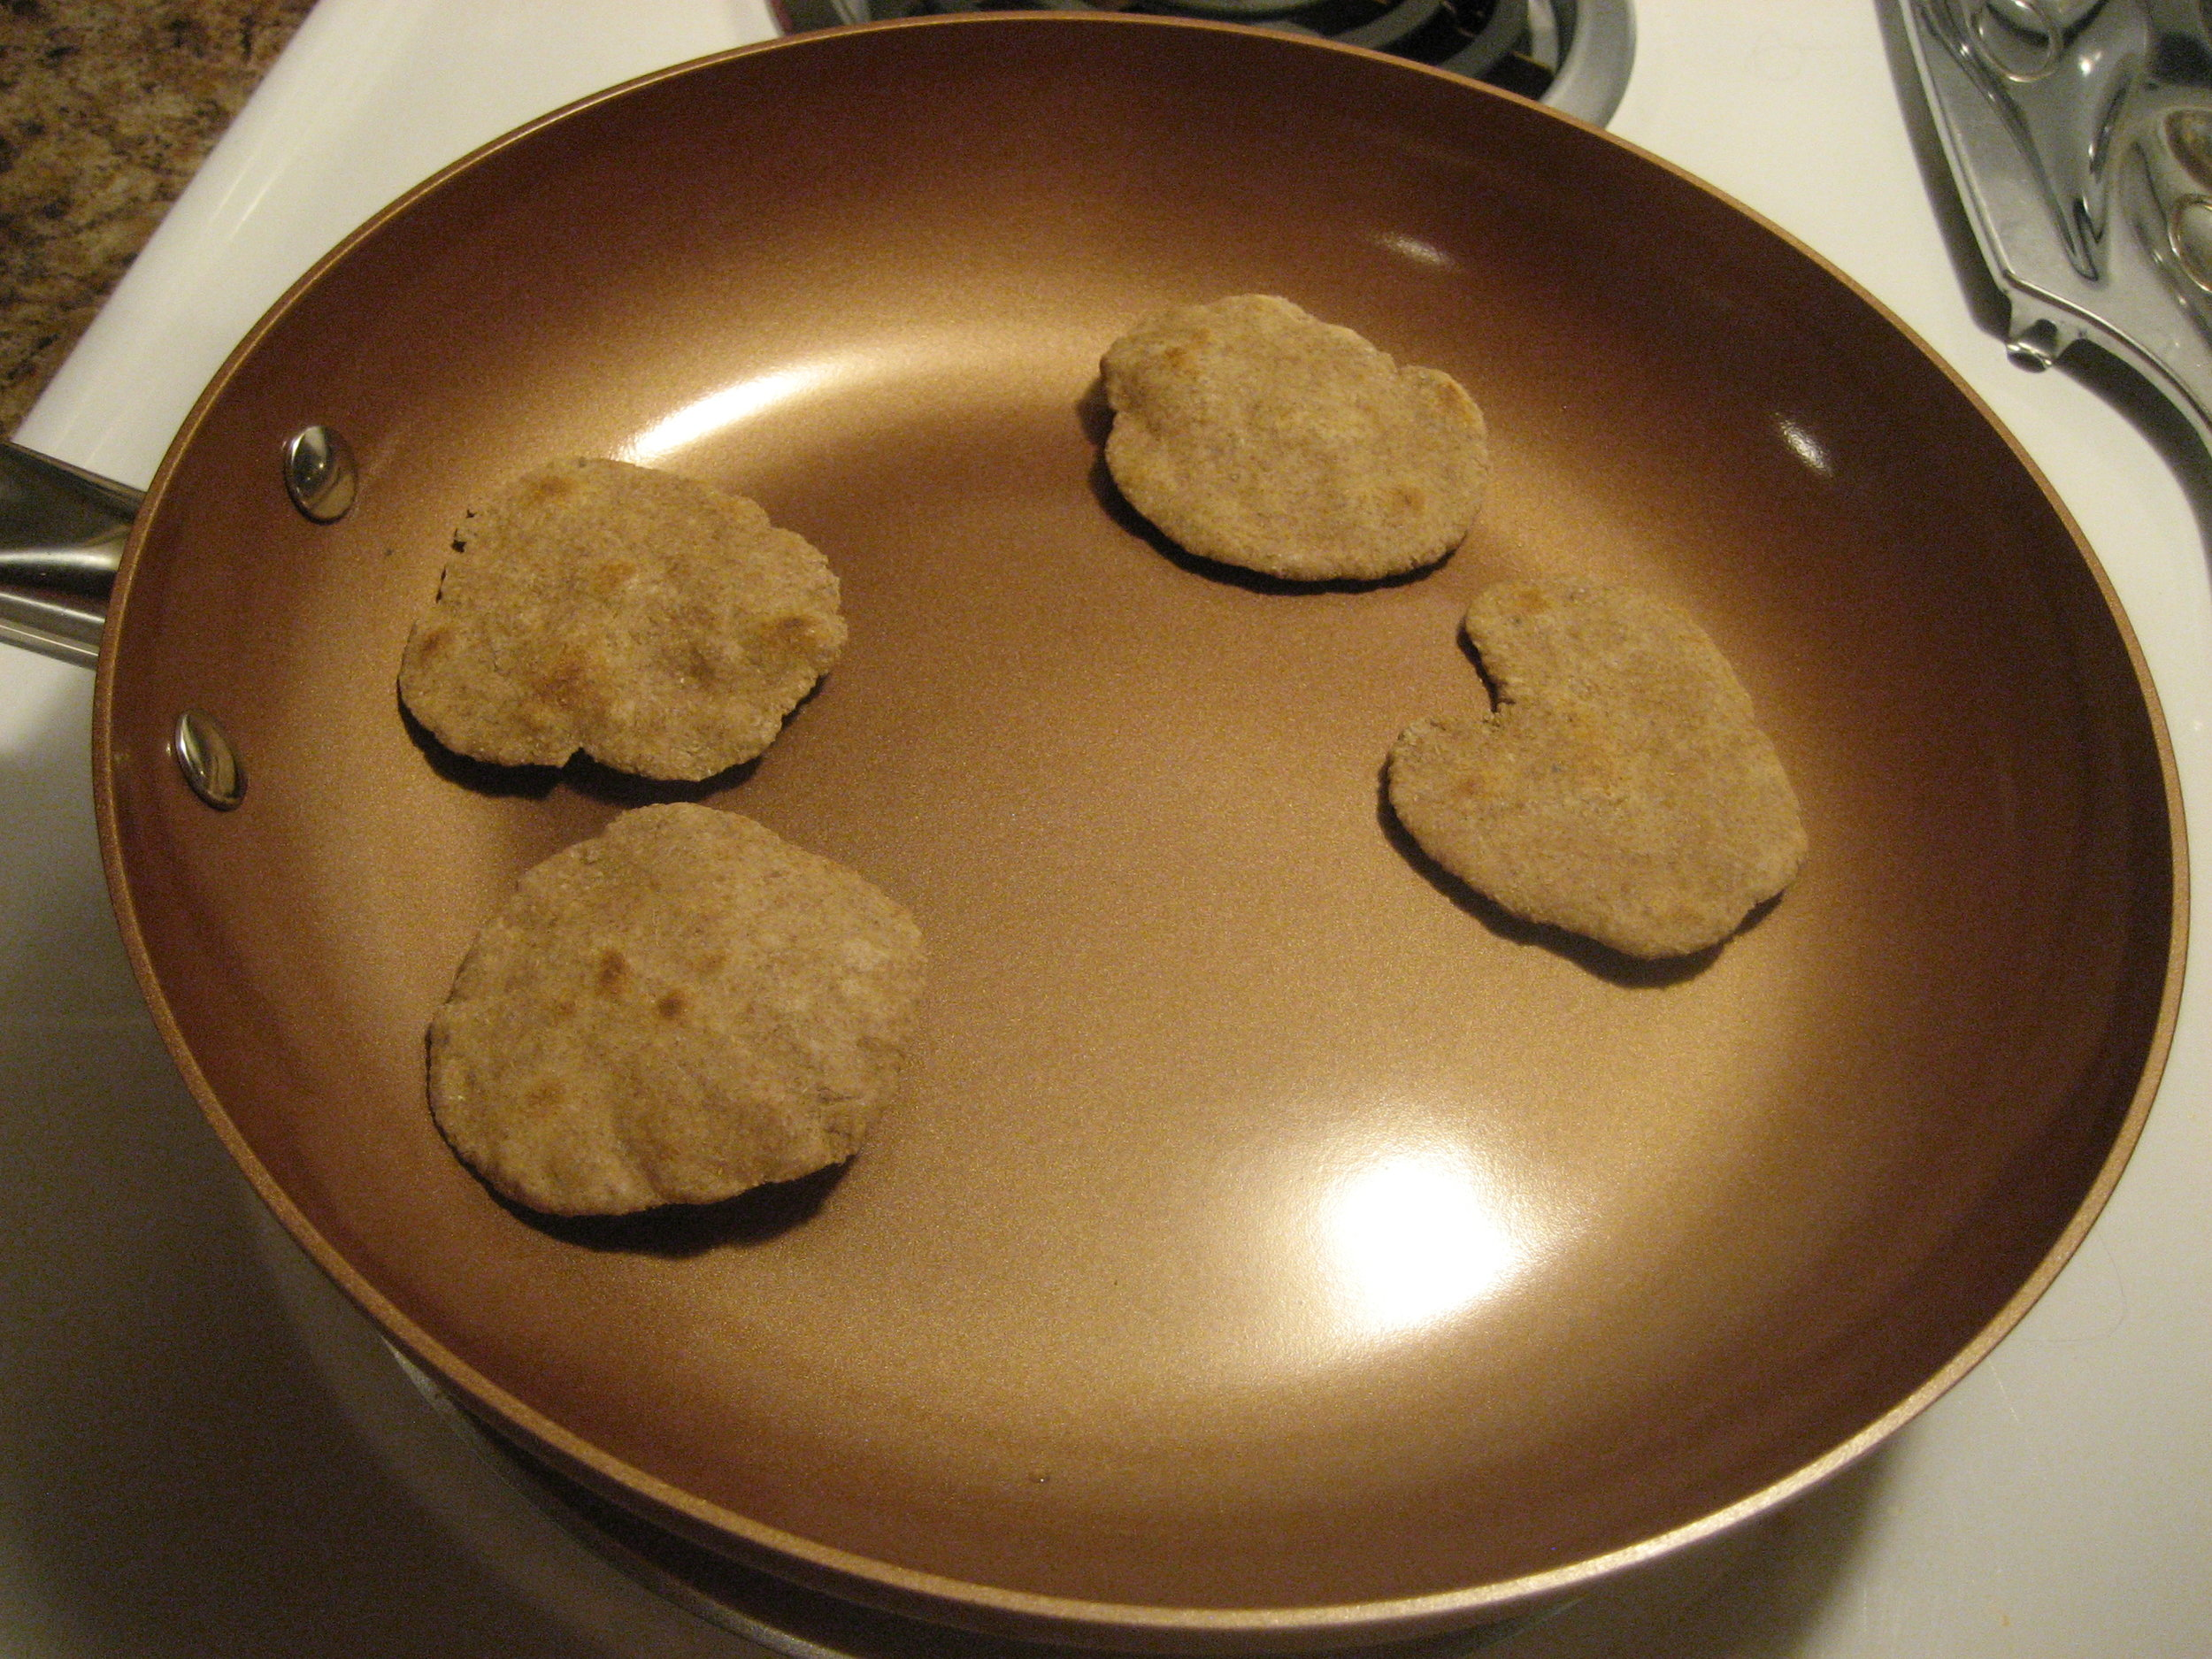 I cooked them in batches of four.